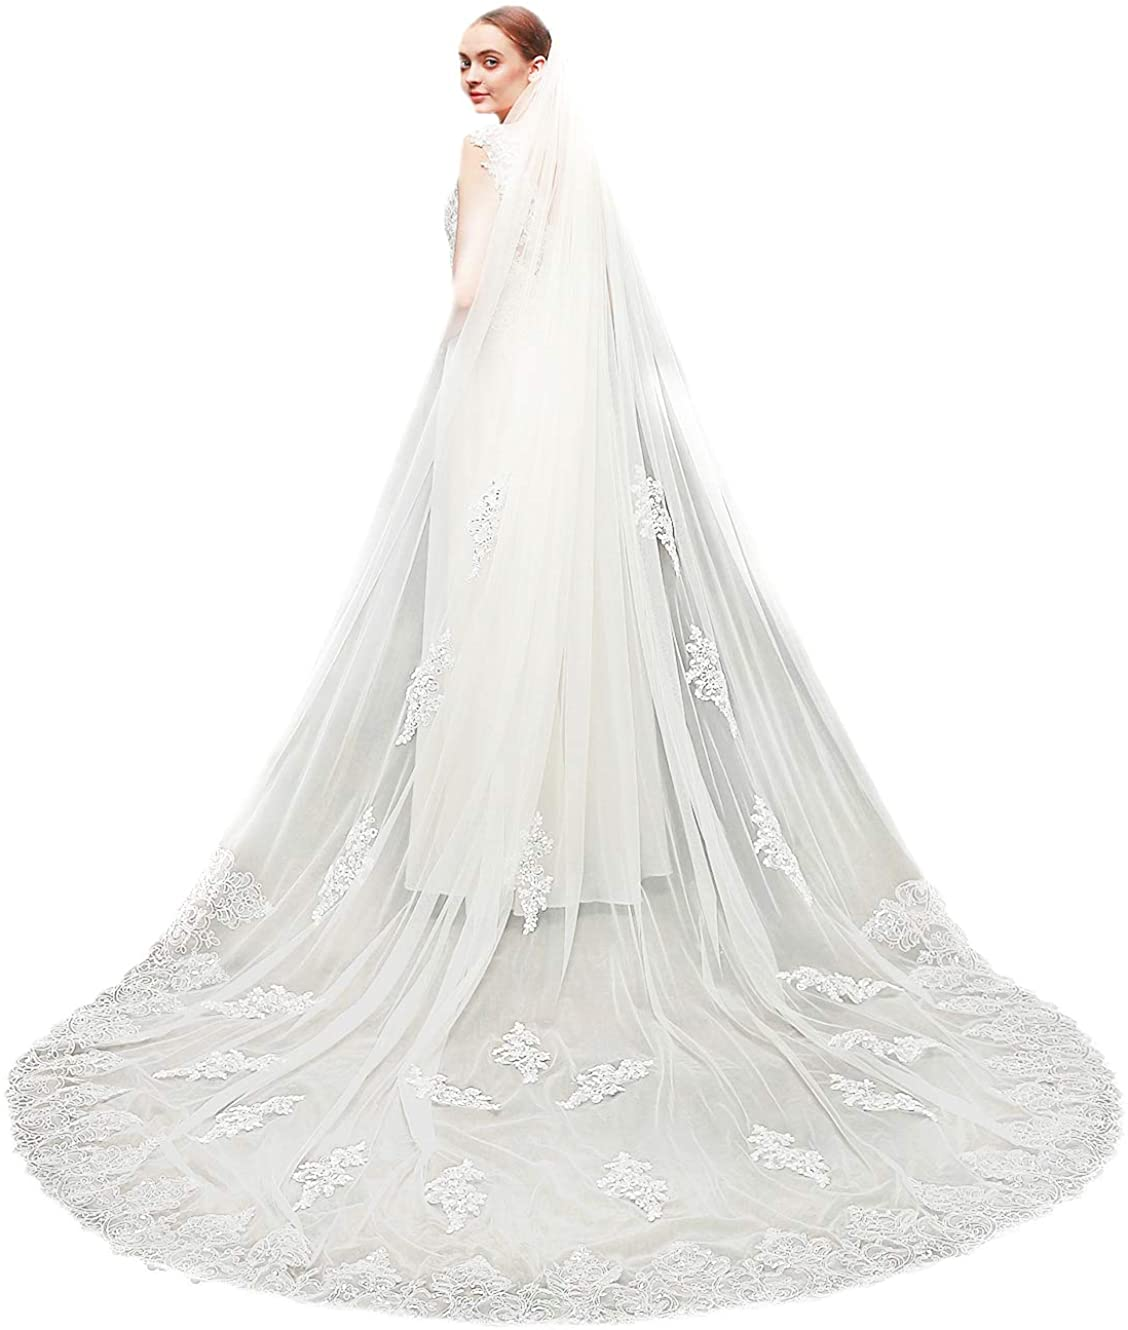 Black//White//Ivory Wedding Bridal Veil Sequins Cathedral Lace Tulle With Comb 3M